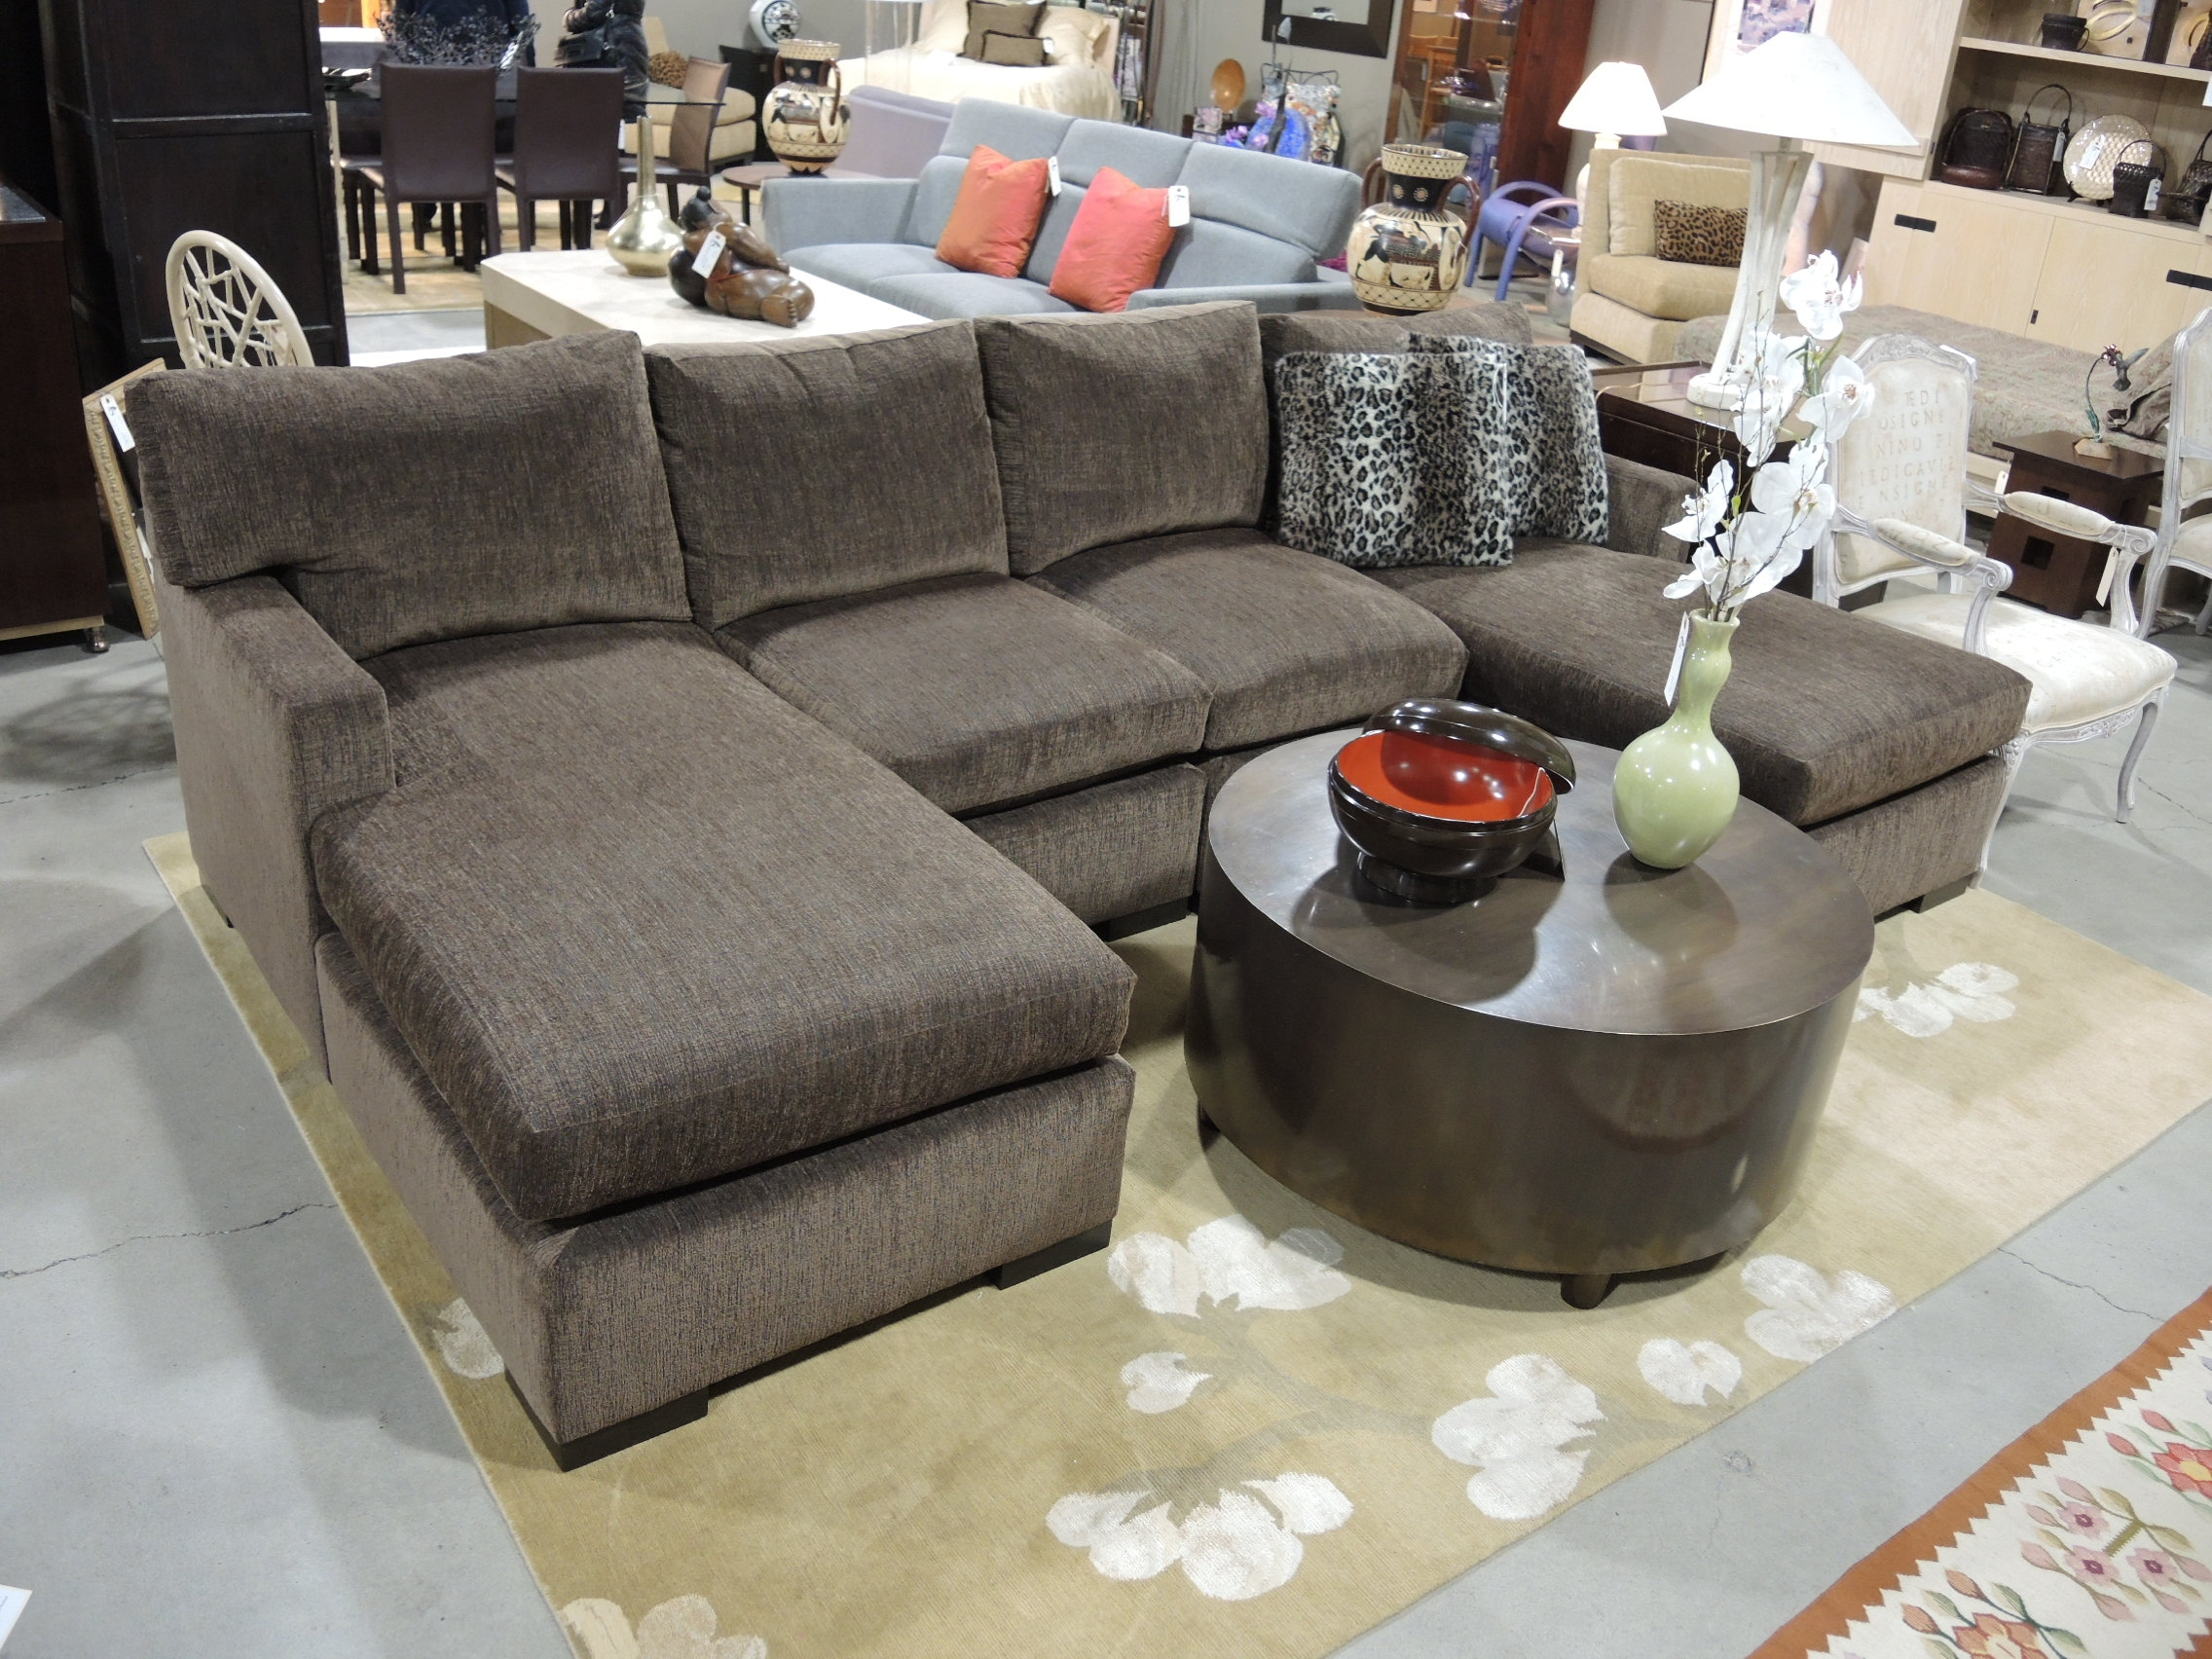 Sofas Center Doublee Lounge Sofa 15 8 Sectional Chair And Indoor Within Wide Sofa Chairs (Image 10 of 15)